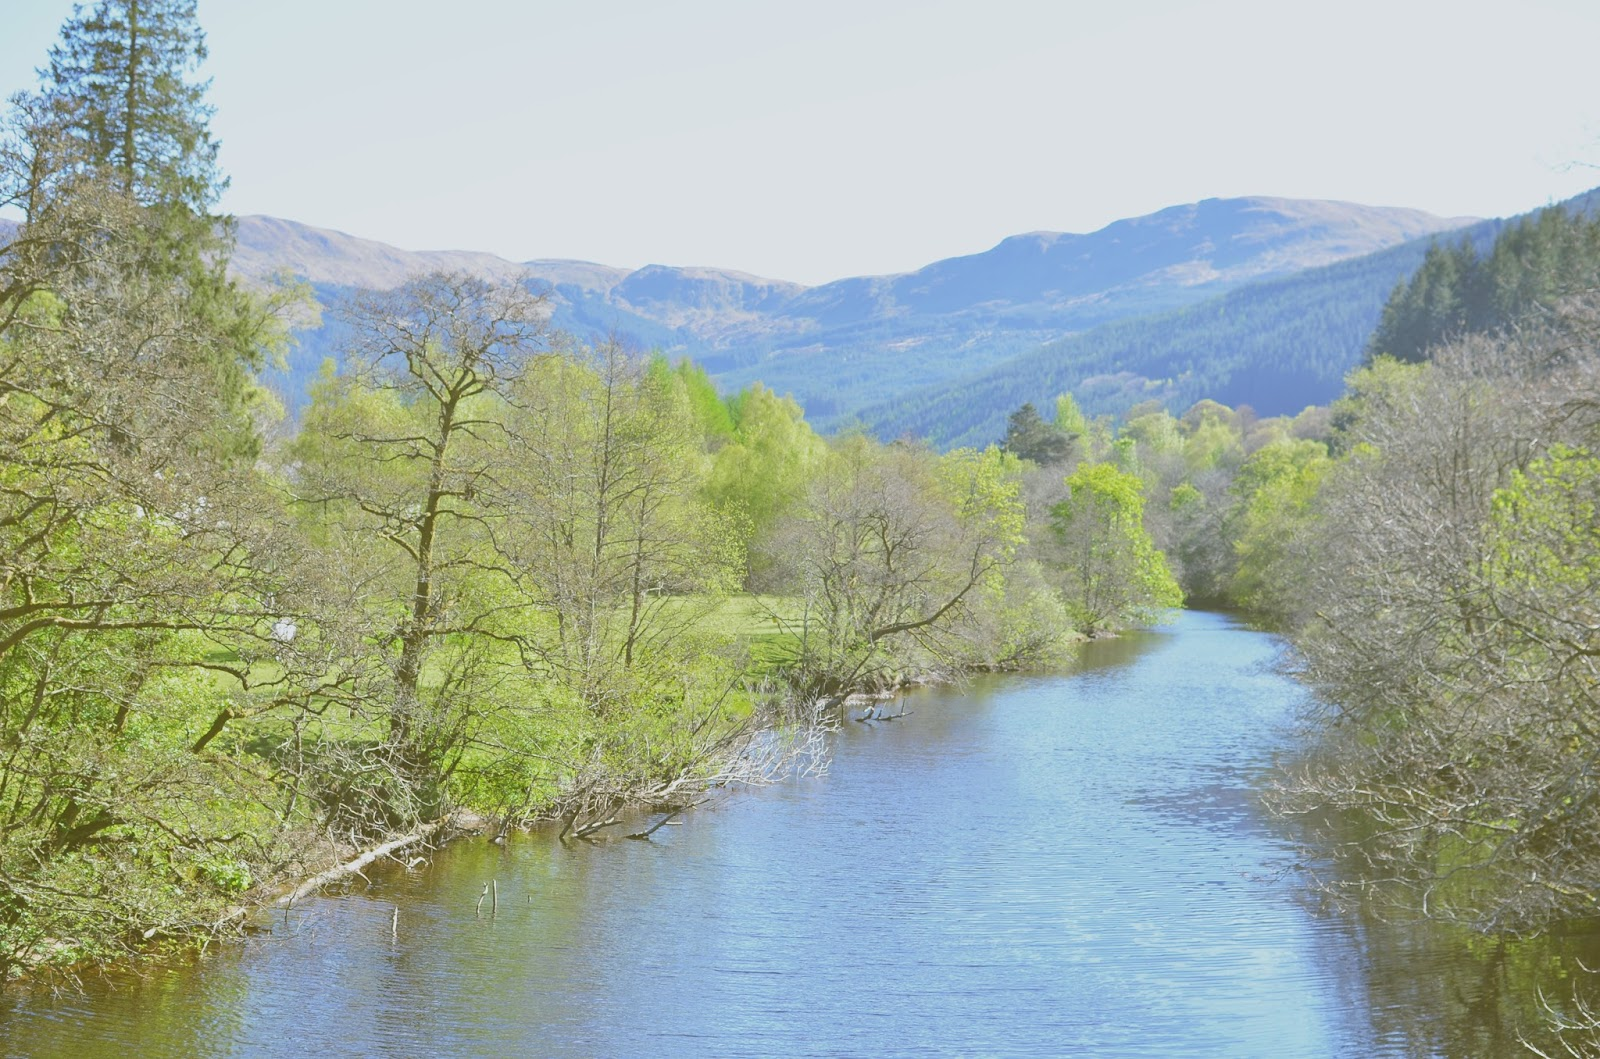 callander, strathyre, the inn bistro, stirling, travel, travel blogger, scottish travel blogger, scottish highlands, blogger, lifestyle blogger, scottish, scotland, where to travel, travel guide, scottish travel guide, where to visit in scotland, where to visit,